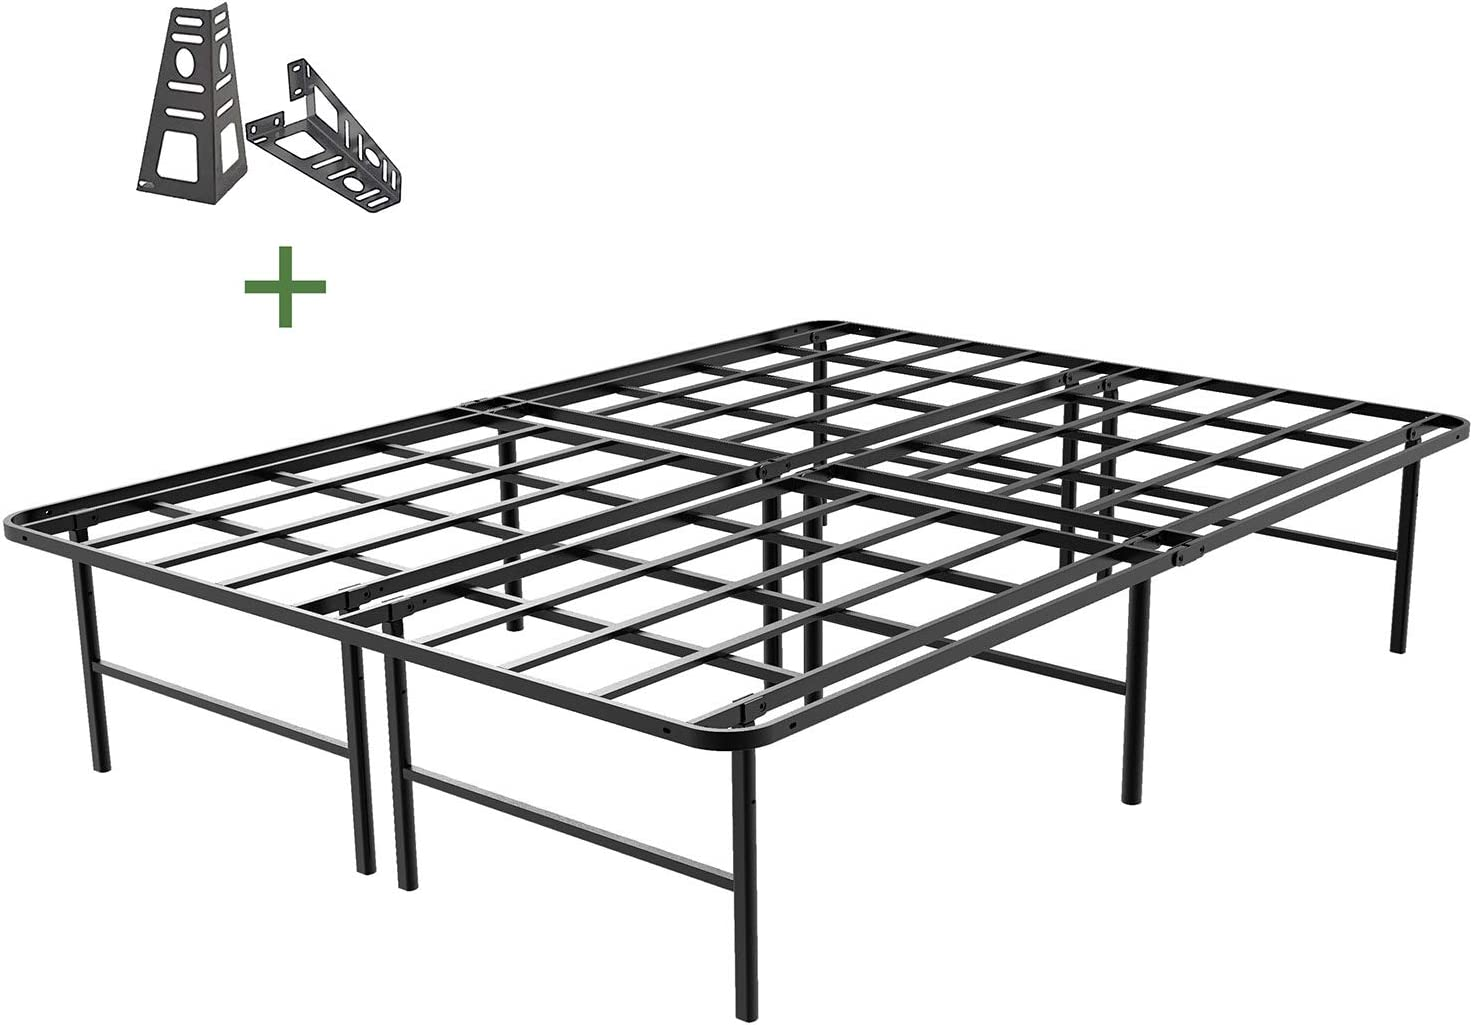 45MinST 16 Inch Platform Bed Frame 2 Brackets Included Mattress Foundation 3000LBS Heavy Duty Extremely Easy Assembly Box Spring Replacement Quiet Noise-Free, Twin XL Full Queen King Cal King Queen